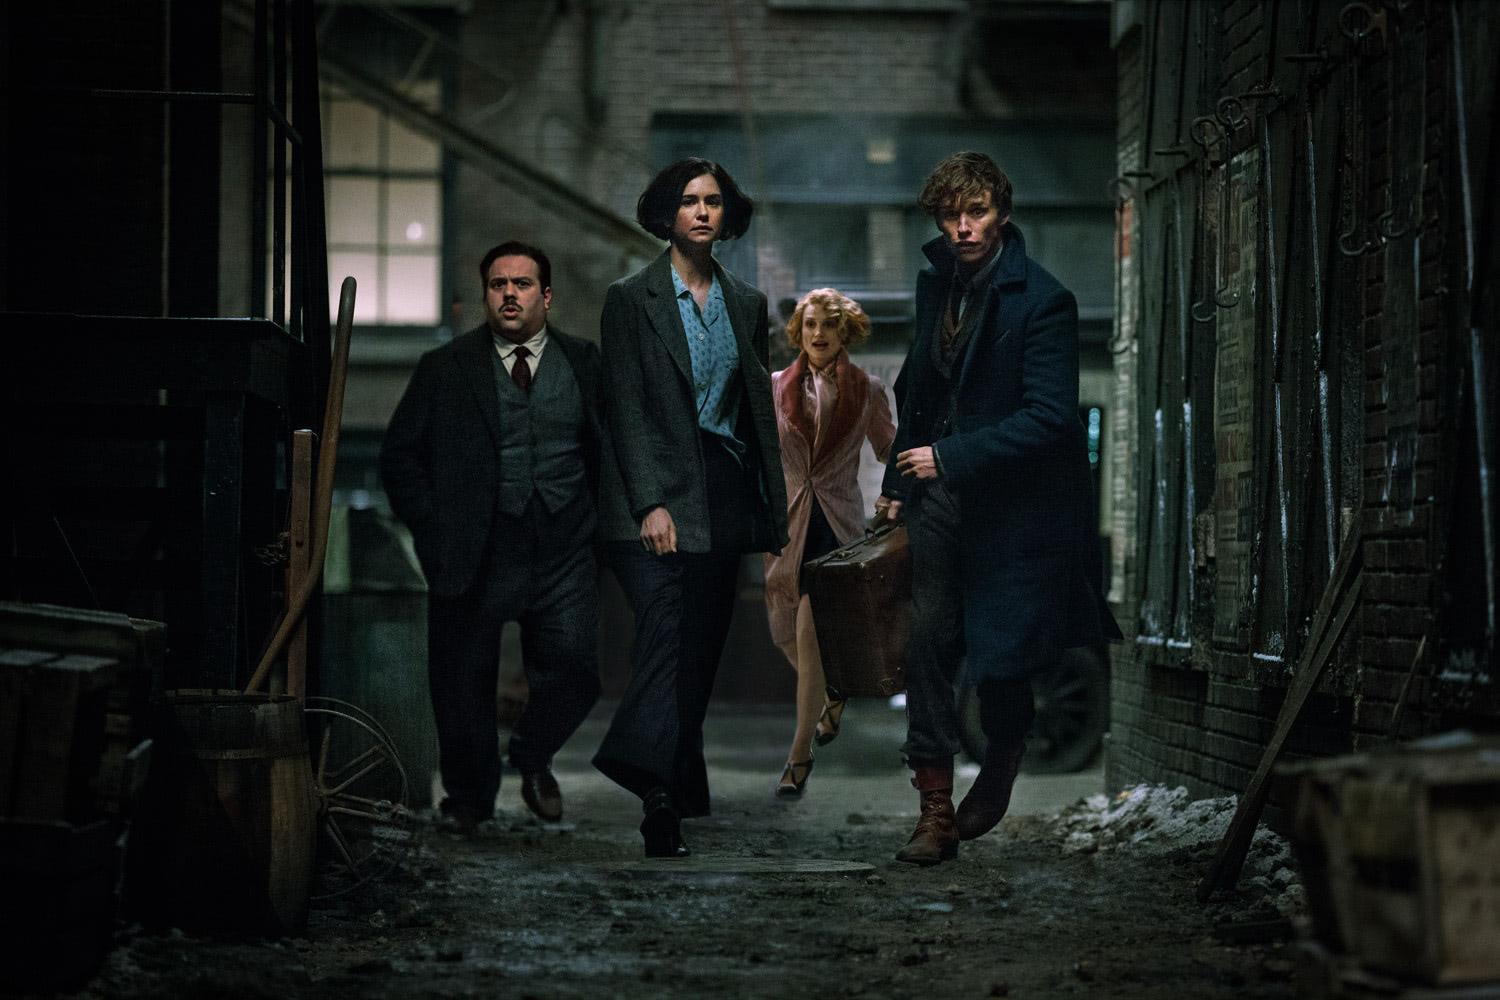 Jacob, Tina, Queenie and Newt in New York